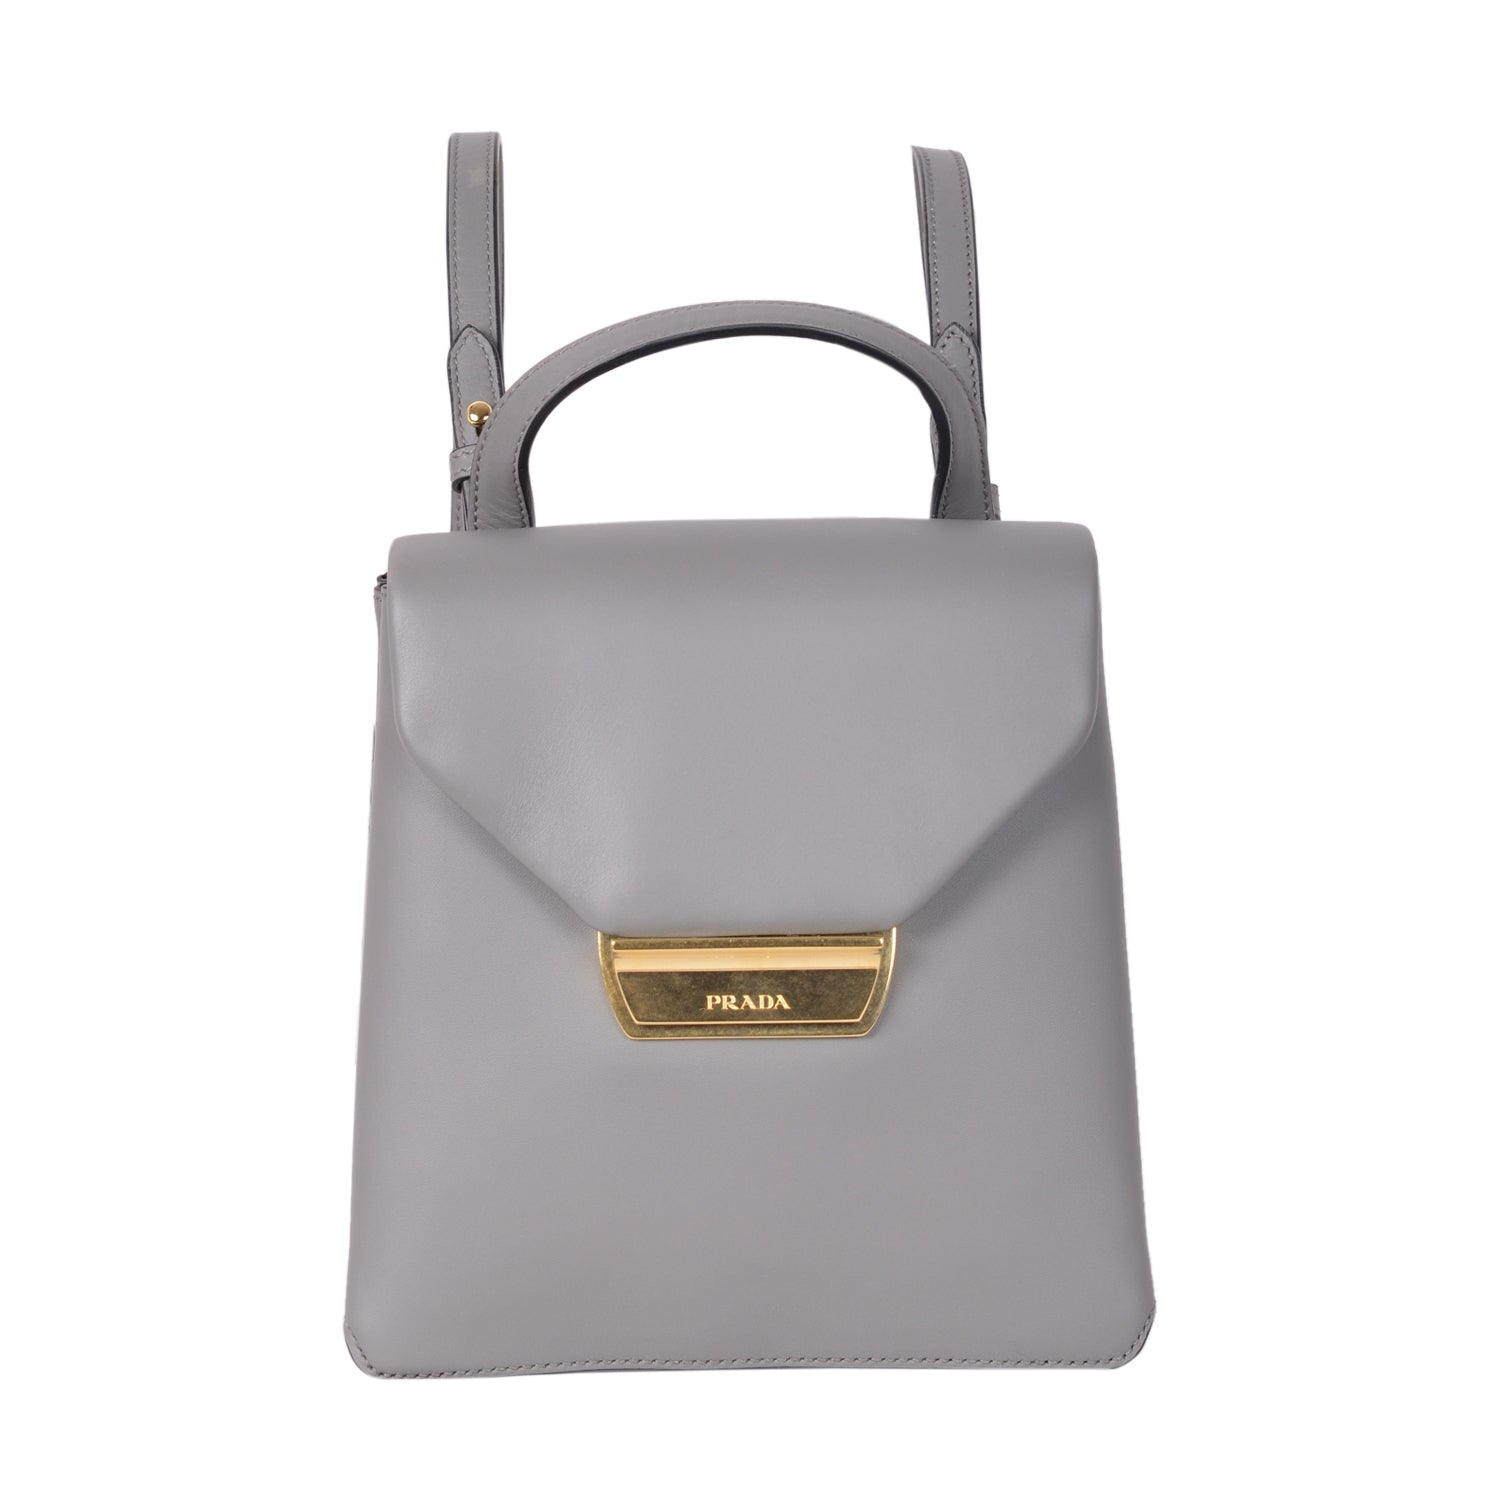 Prada mini backpack in grey saffiano leather  | Shop Luxury Handbag Online